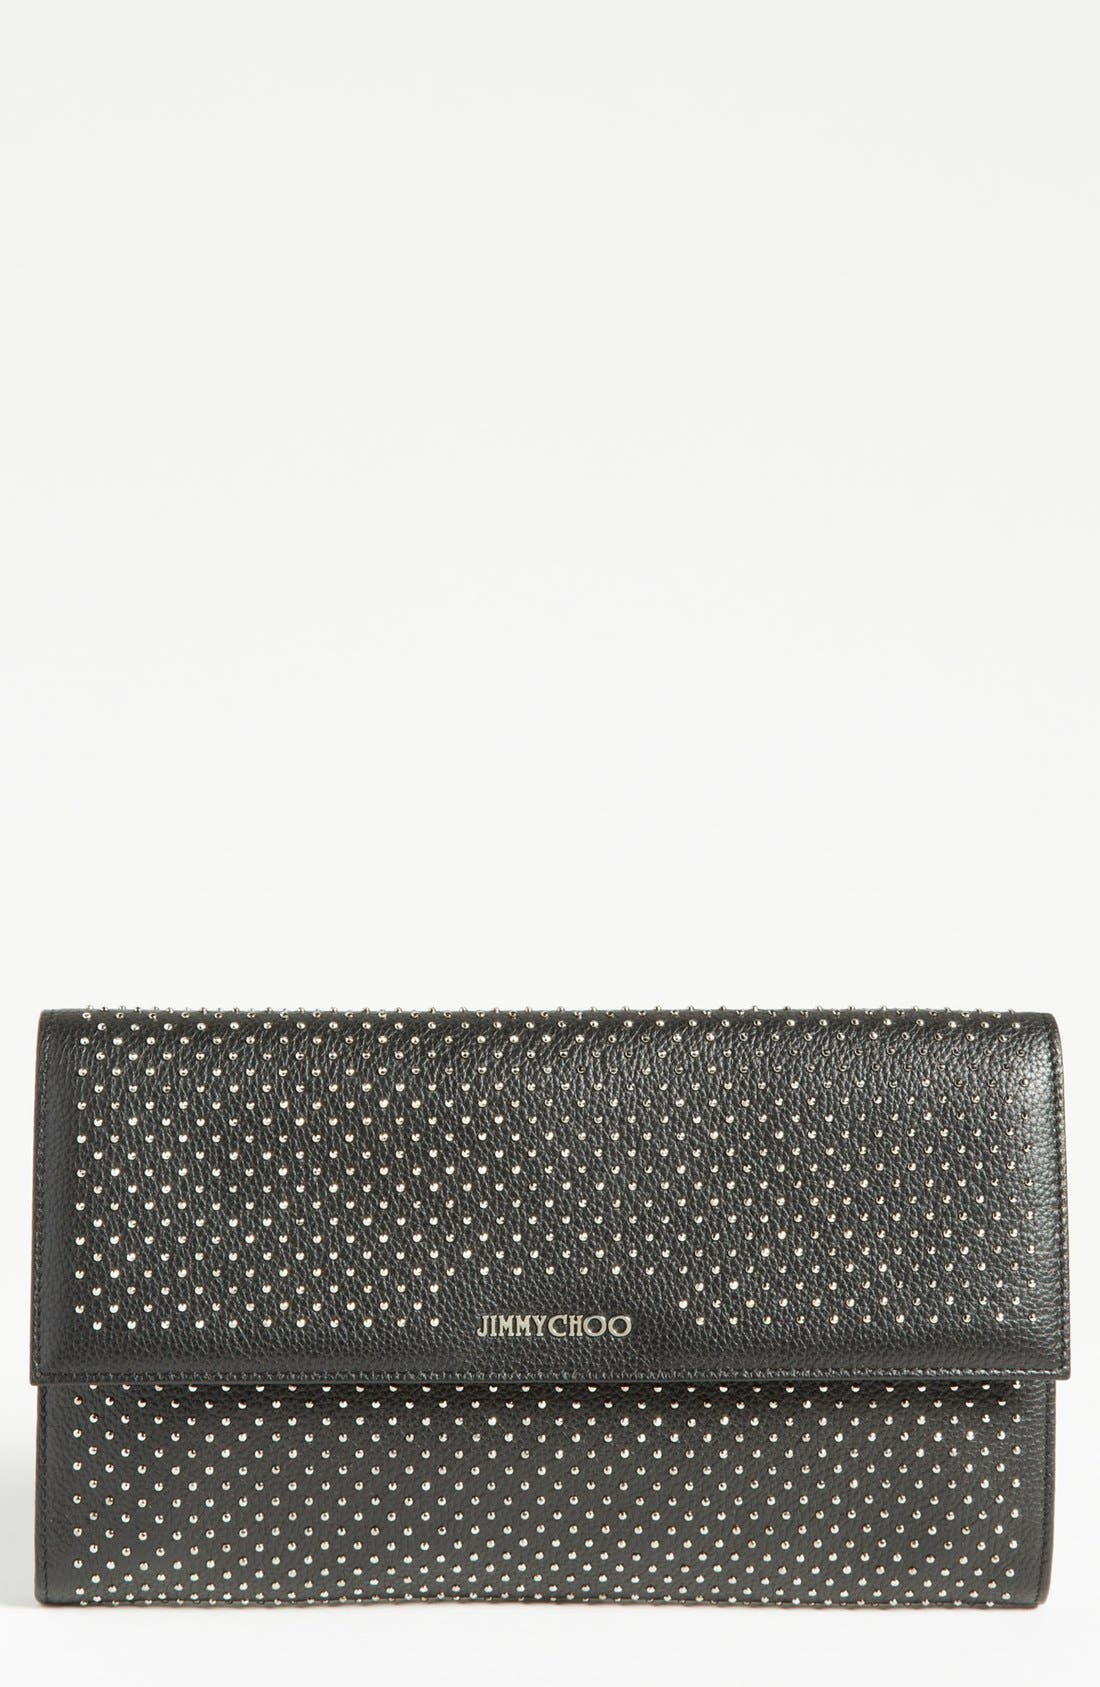 Alternate Image 1 Selected - Jimmy Choo 'Reese - XL' Studded Leather Clutch